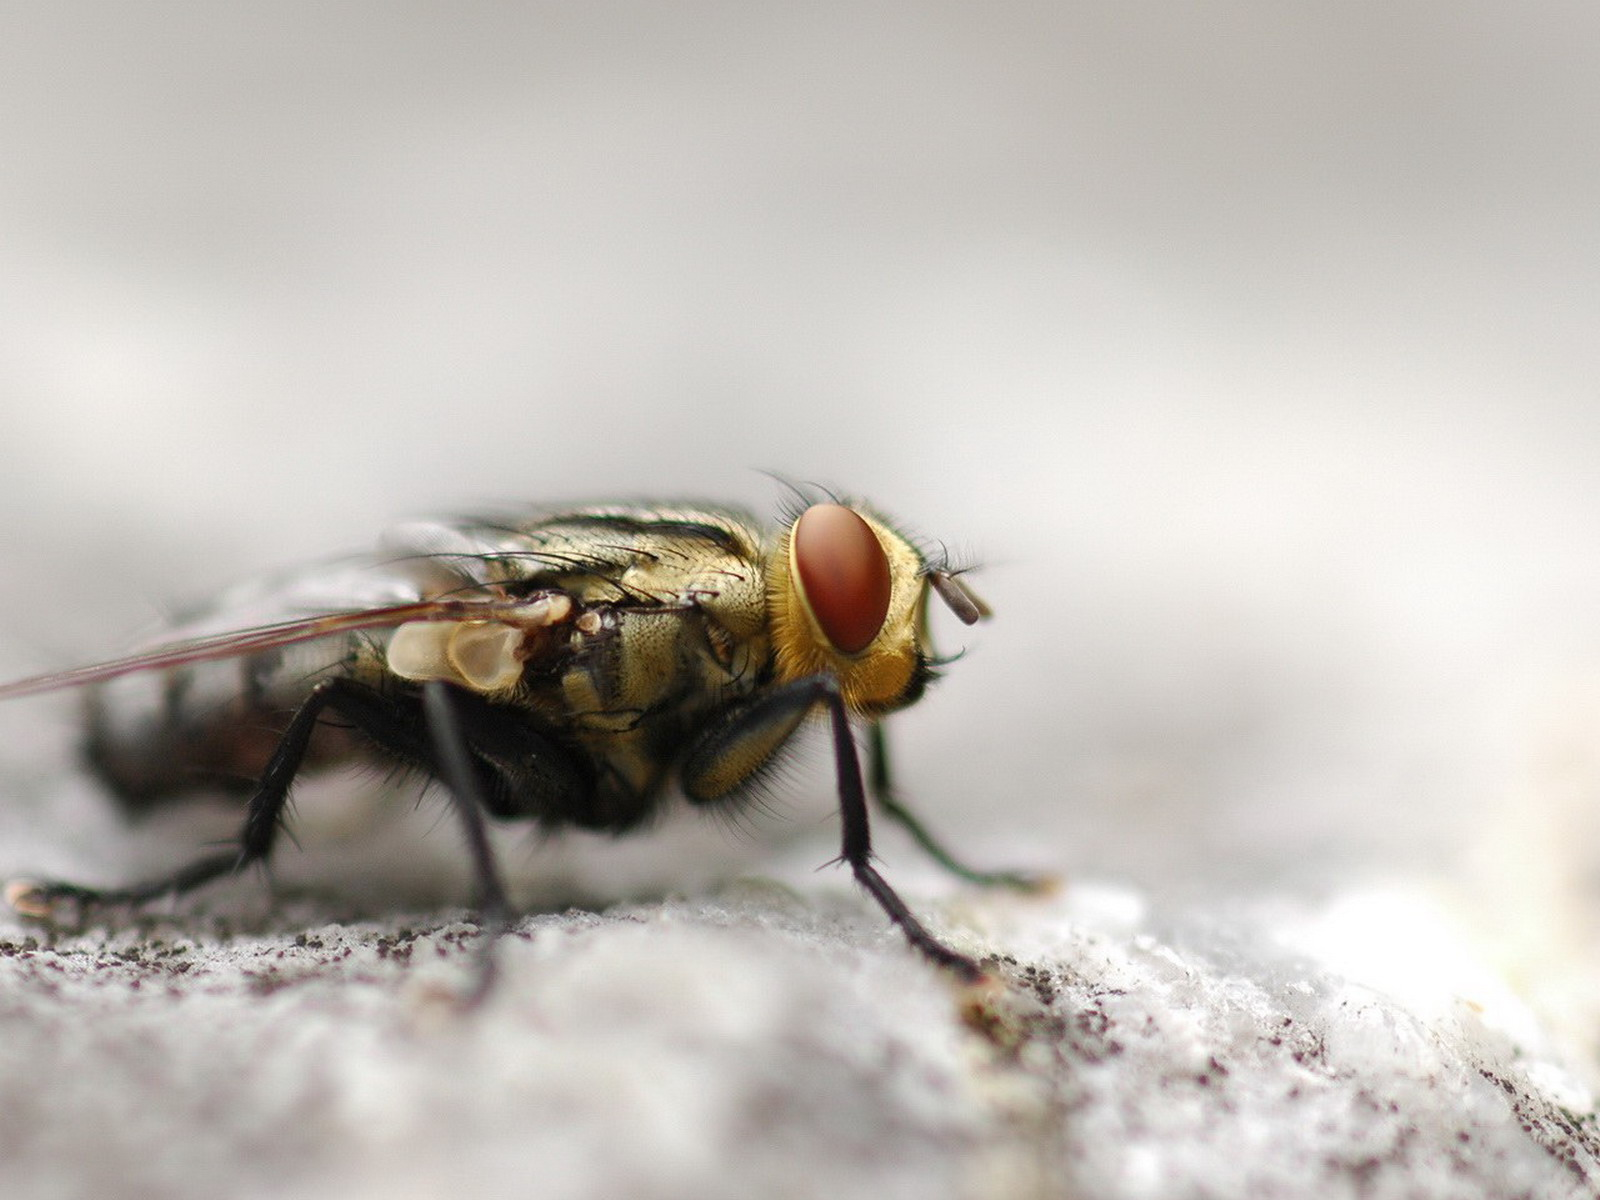 HD wallpaper black common house fly insect wings eyes animal